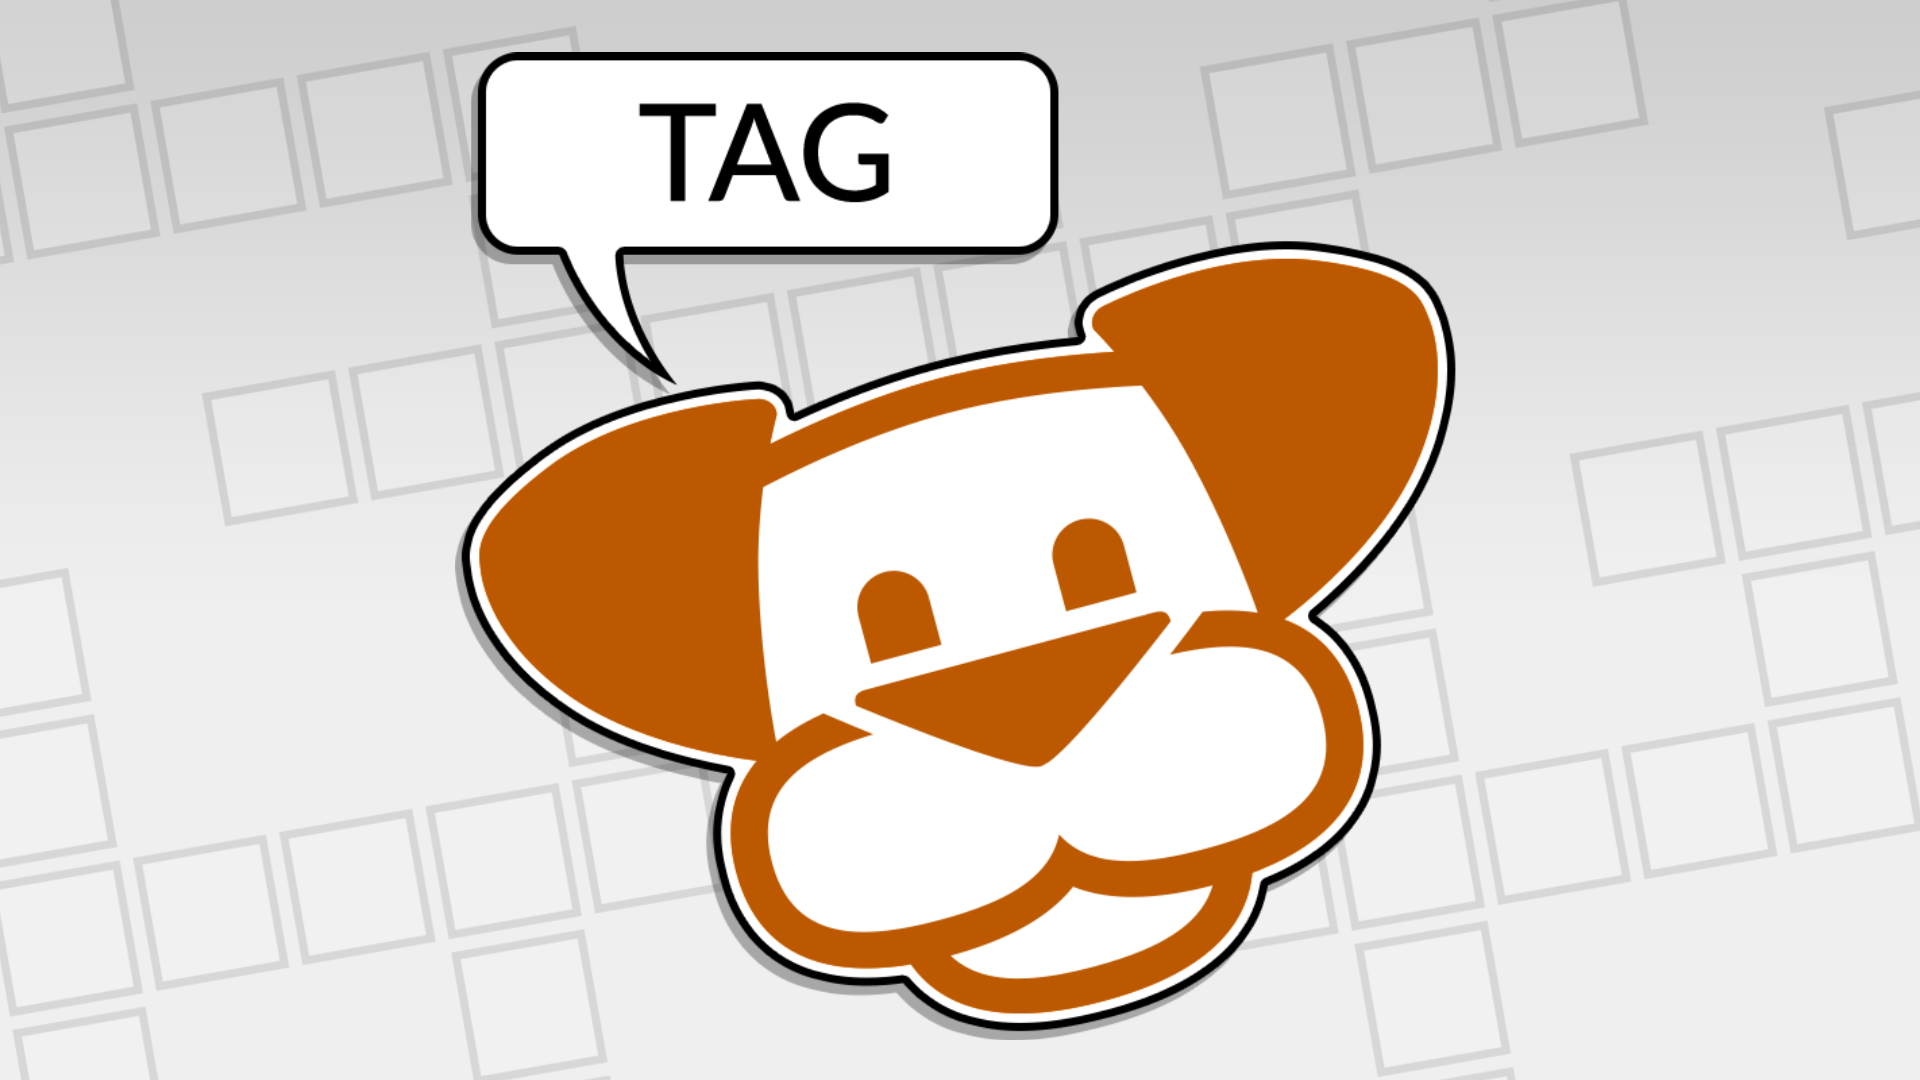 Icon for Pro-tag-onist